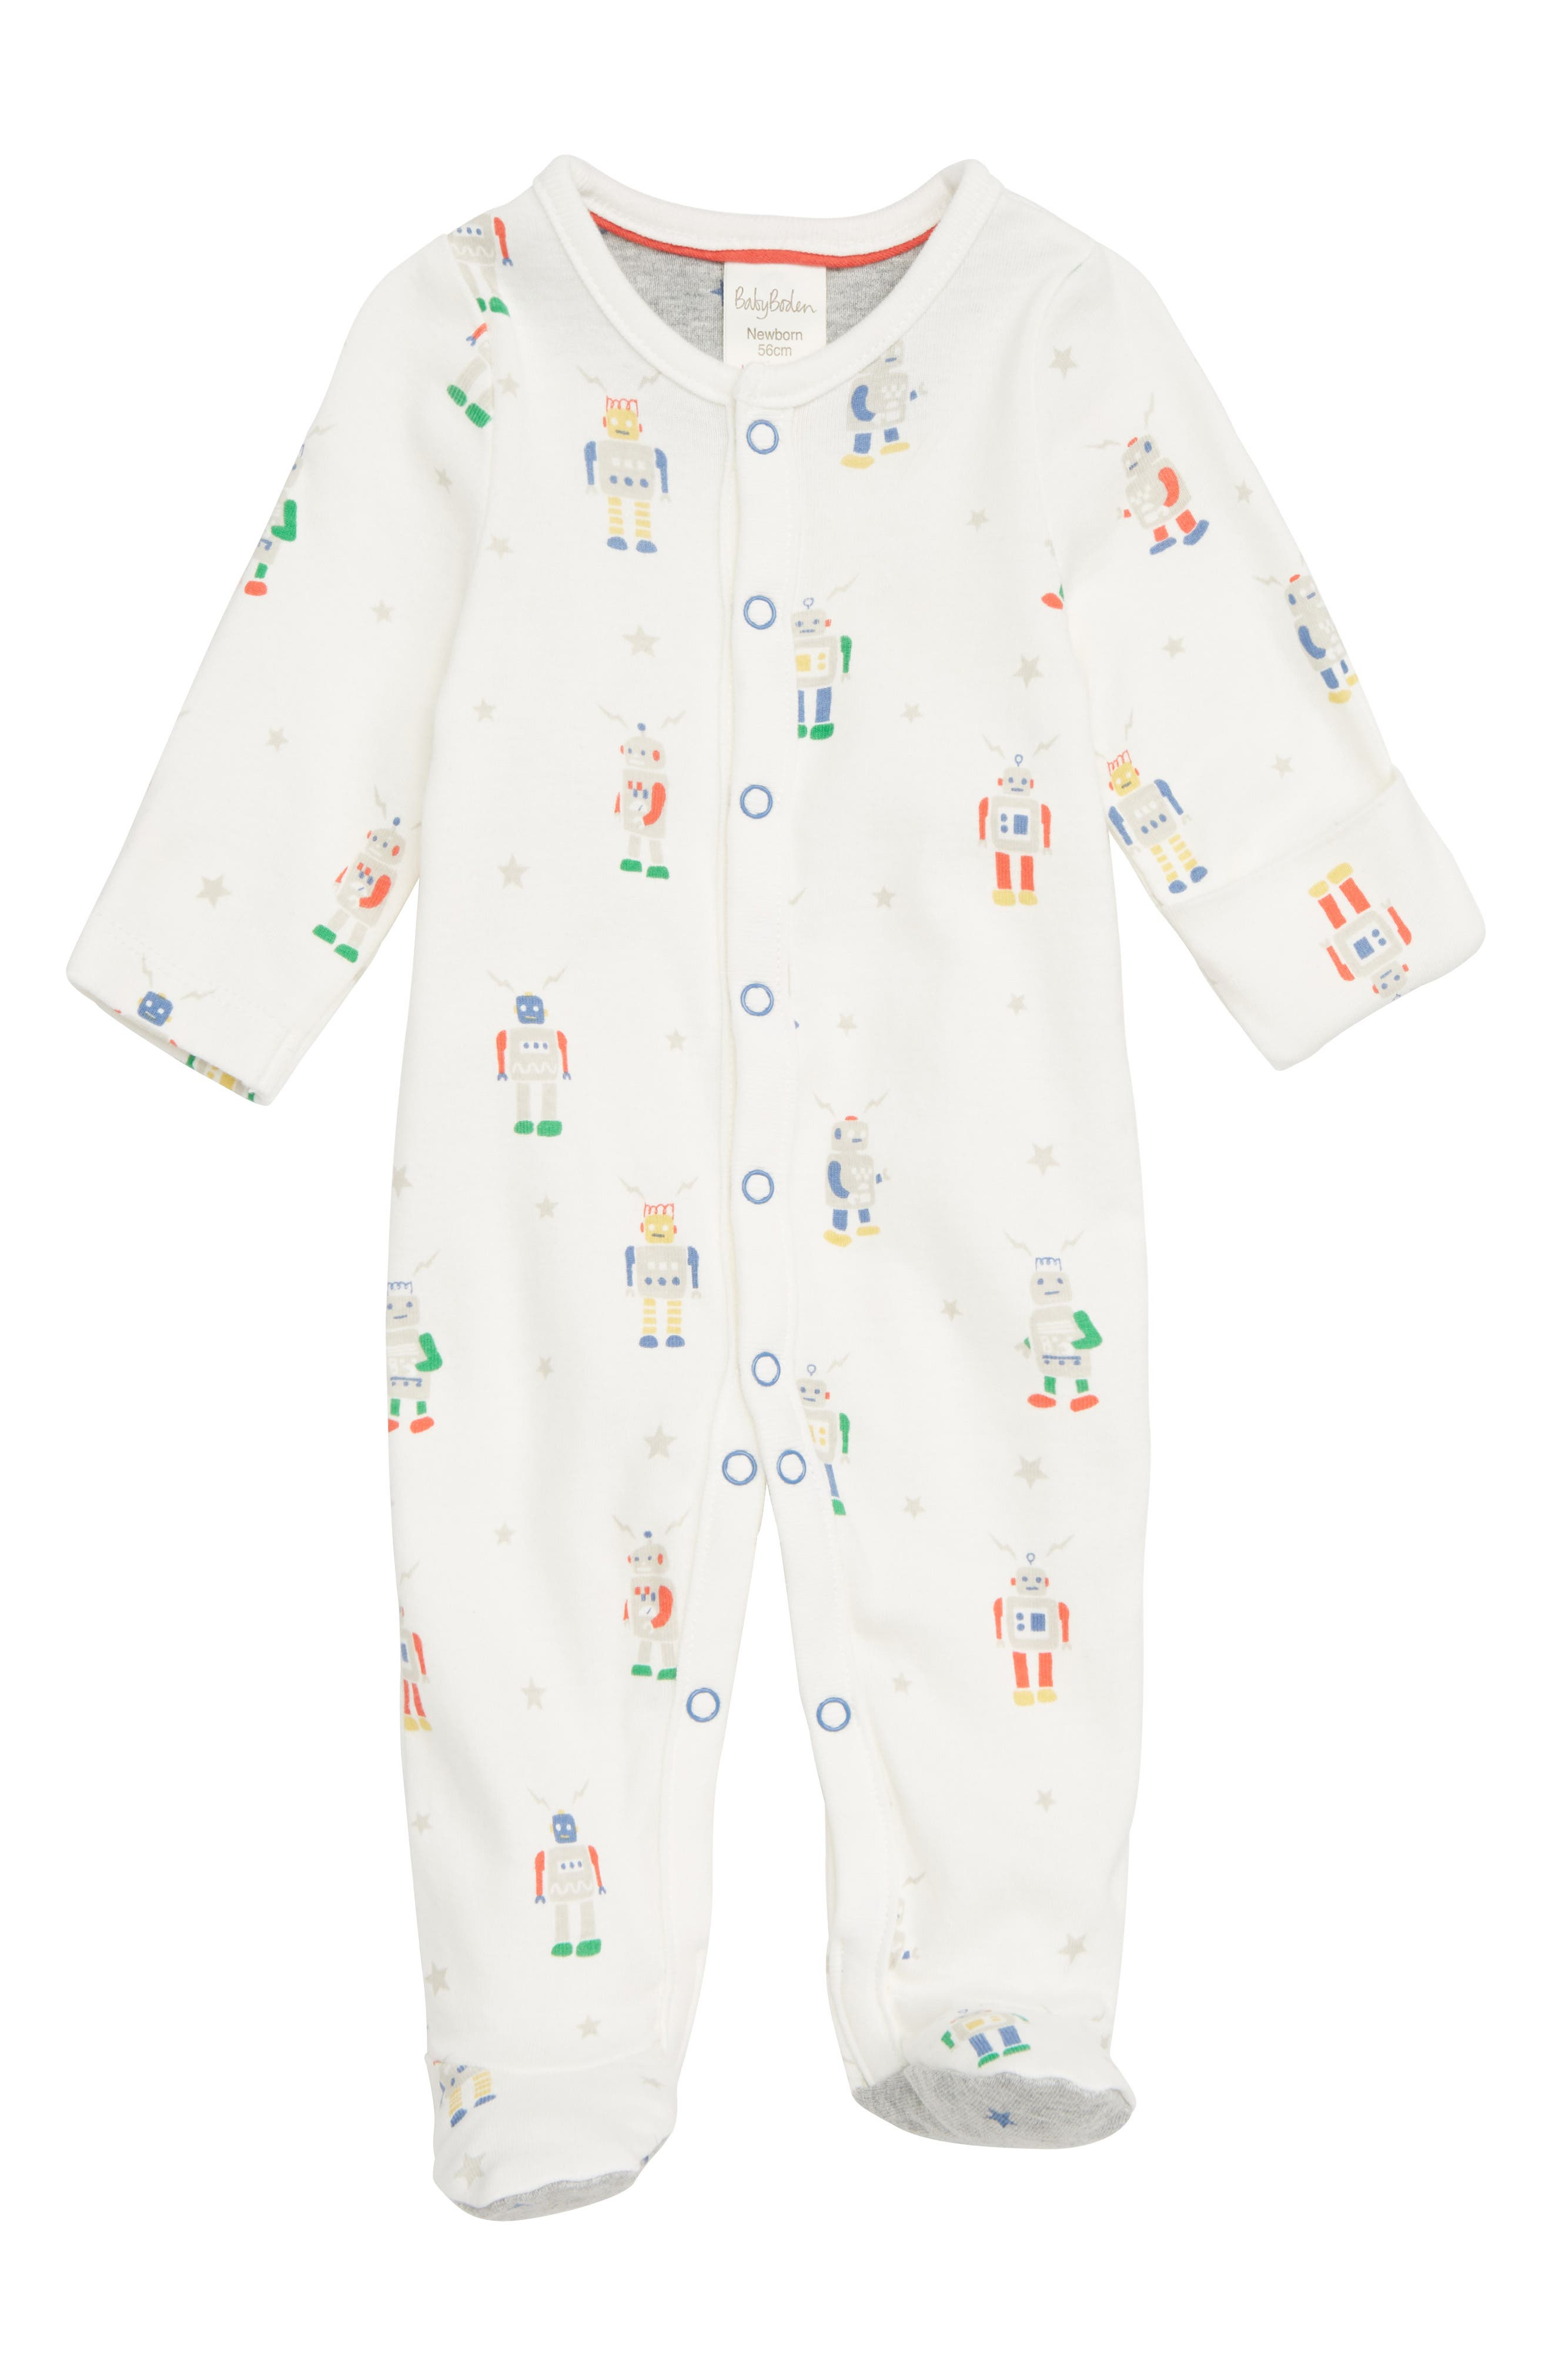 MINI BODEN, Robot Print Fitted One-Piece Footie Pajamas, Main thumbnail 1, color, MULTI ROBOTS